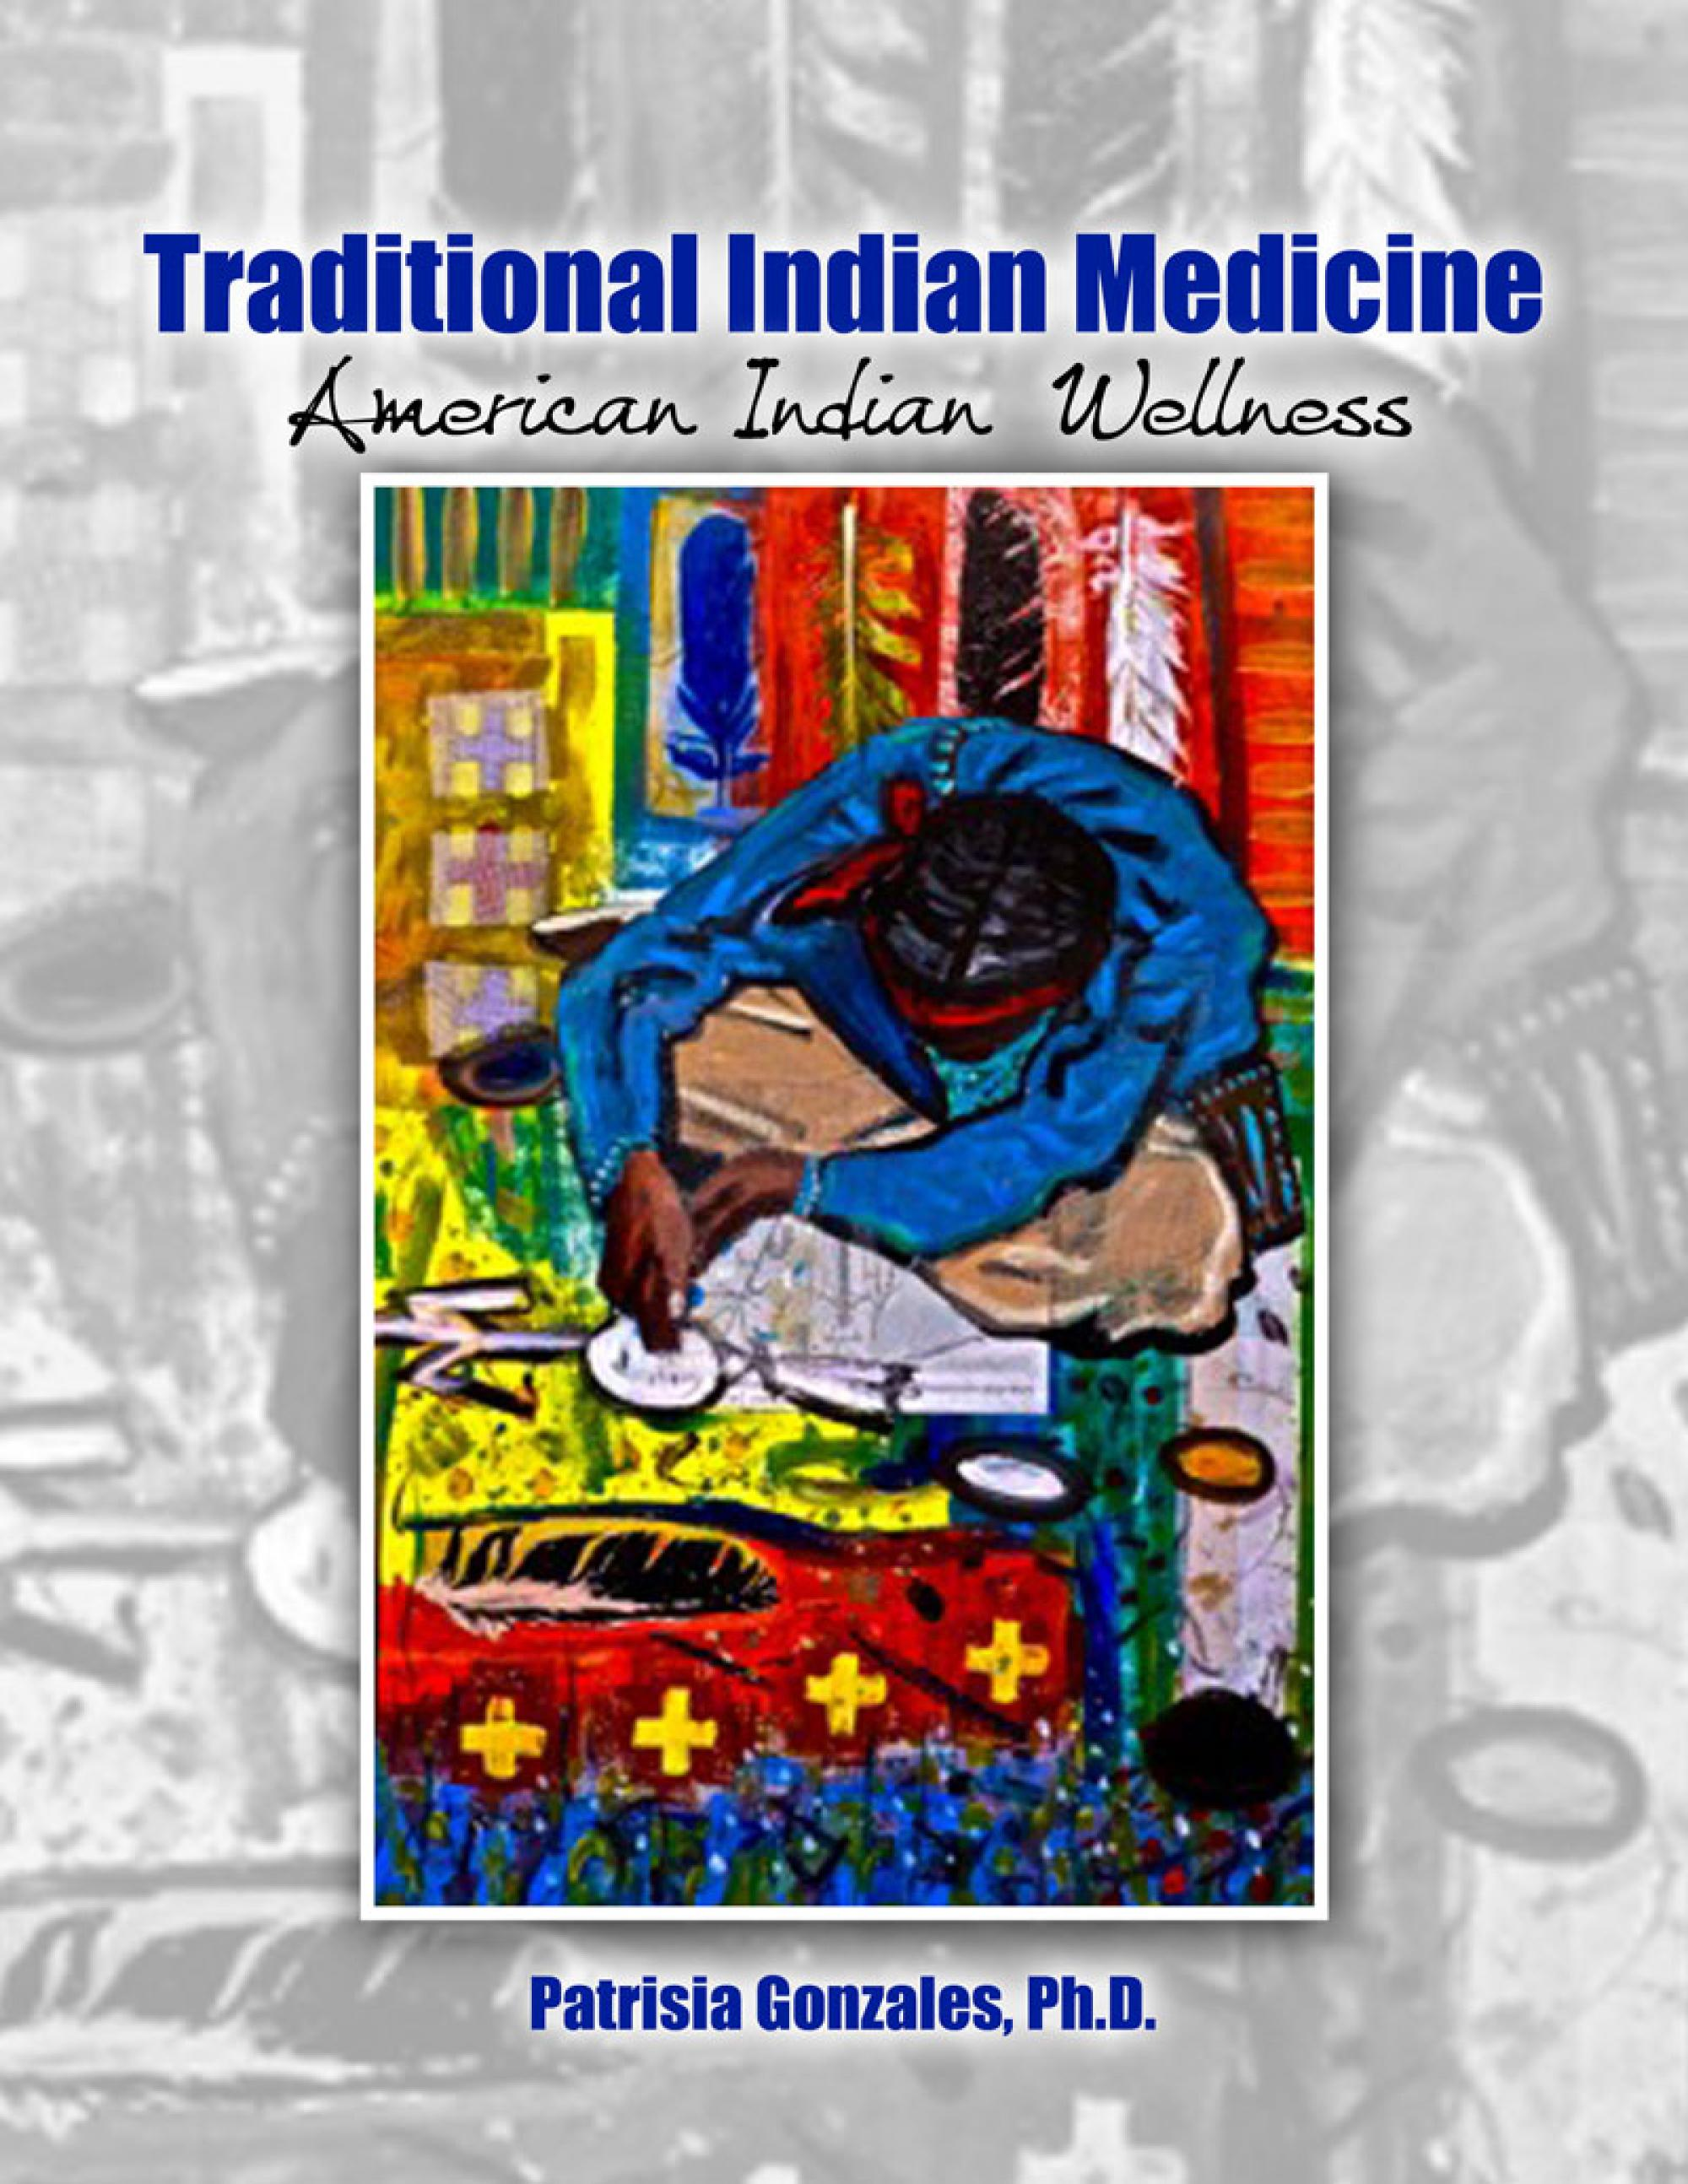 A new book by Patrisia Gonzales includes contributions by several American Indian medical doctors and nurses, indigenous activists in the food sovereignty movement and also scholars and artists.